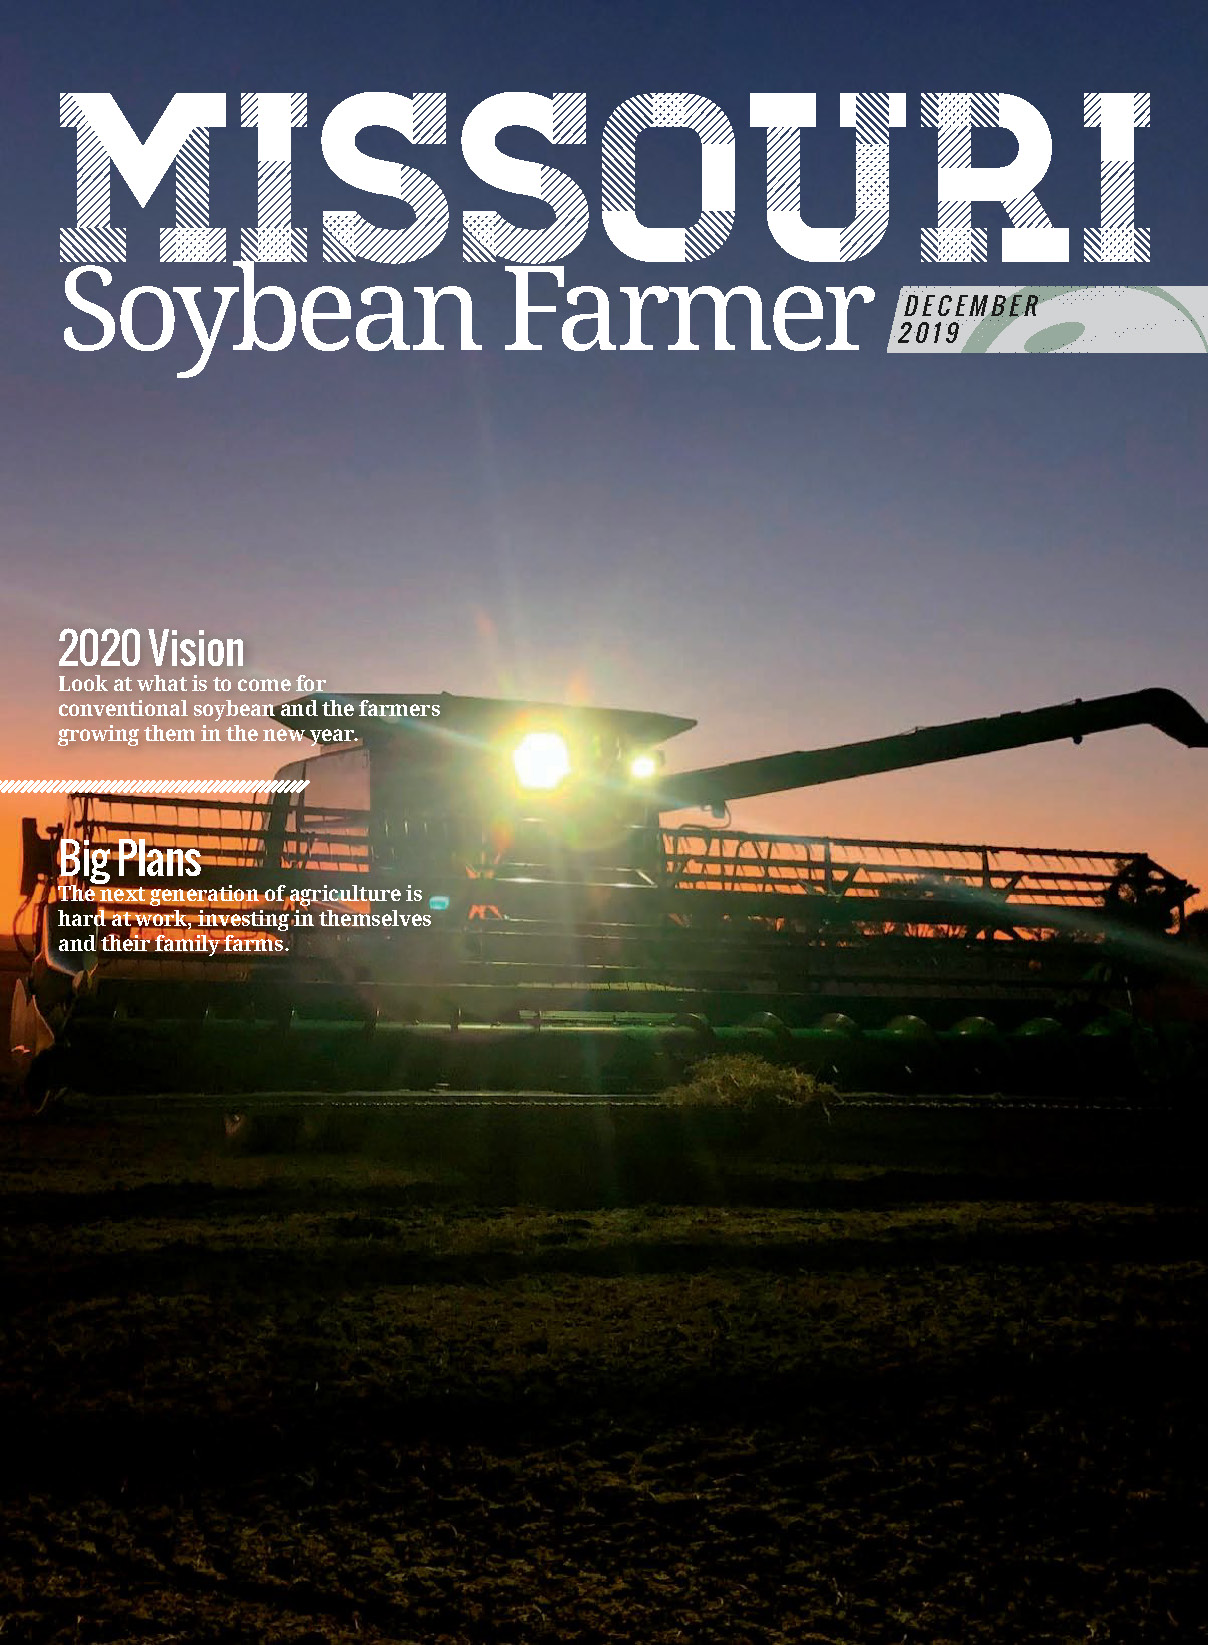 December 2019 Issue of Missouri Soybean Farmer Magazine Available Now